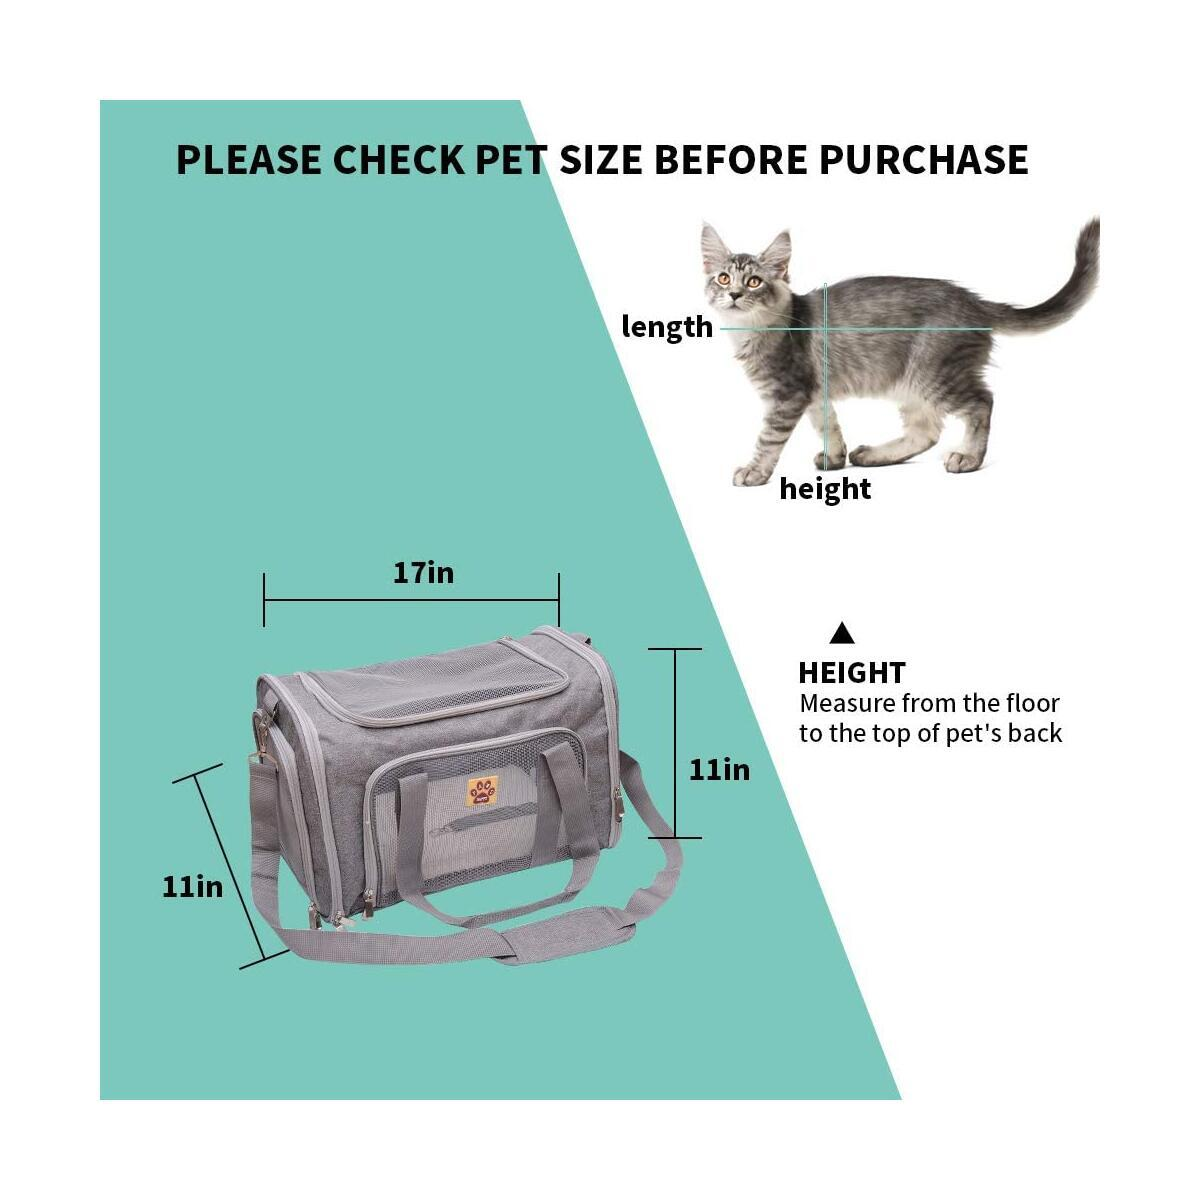 Happy Paws: Pet Bag for Dogs and Cats, Carrier for Small and Medium Dogs and Cats, Airline Approved Dog Carrier for Travel, Top Loading Cat Carrier Bag, Soft Pet Travel Carrier